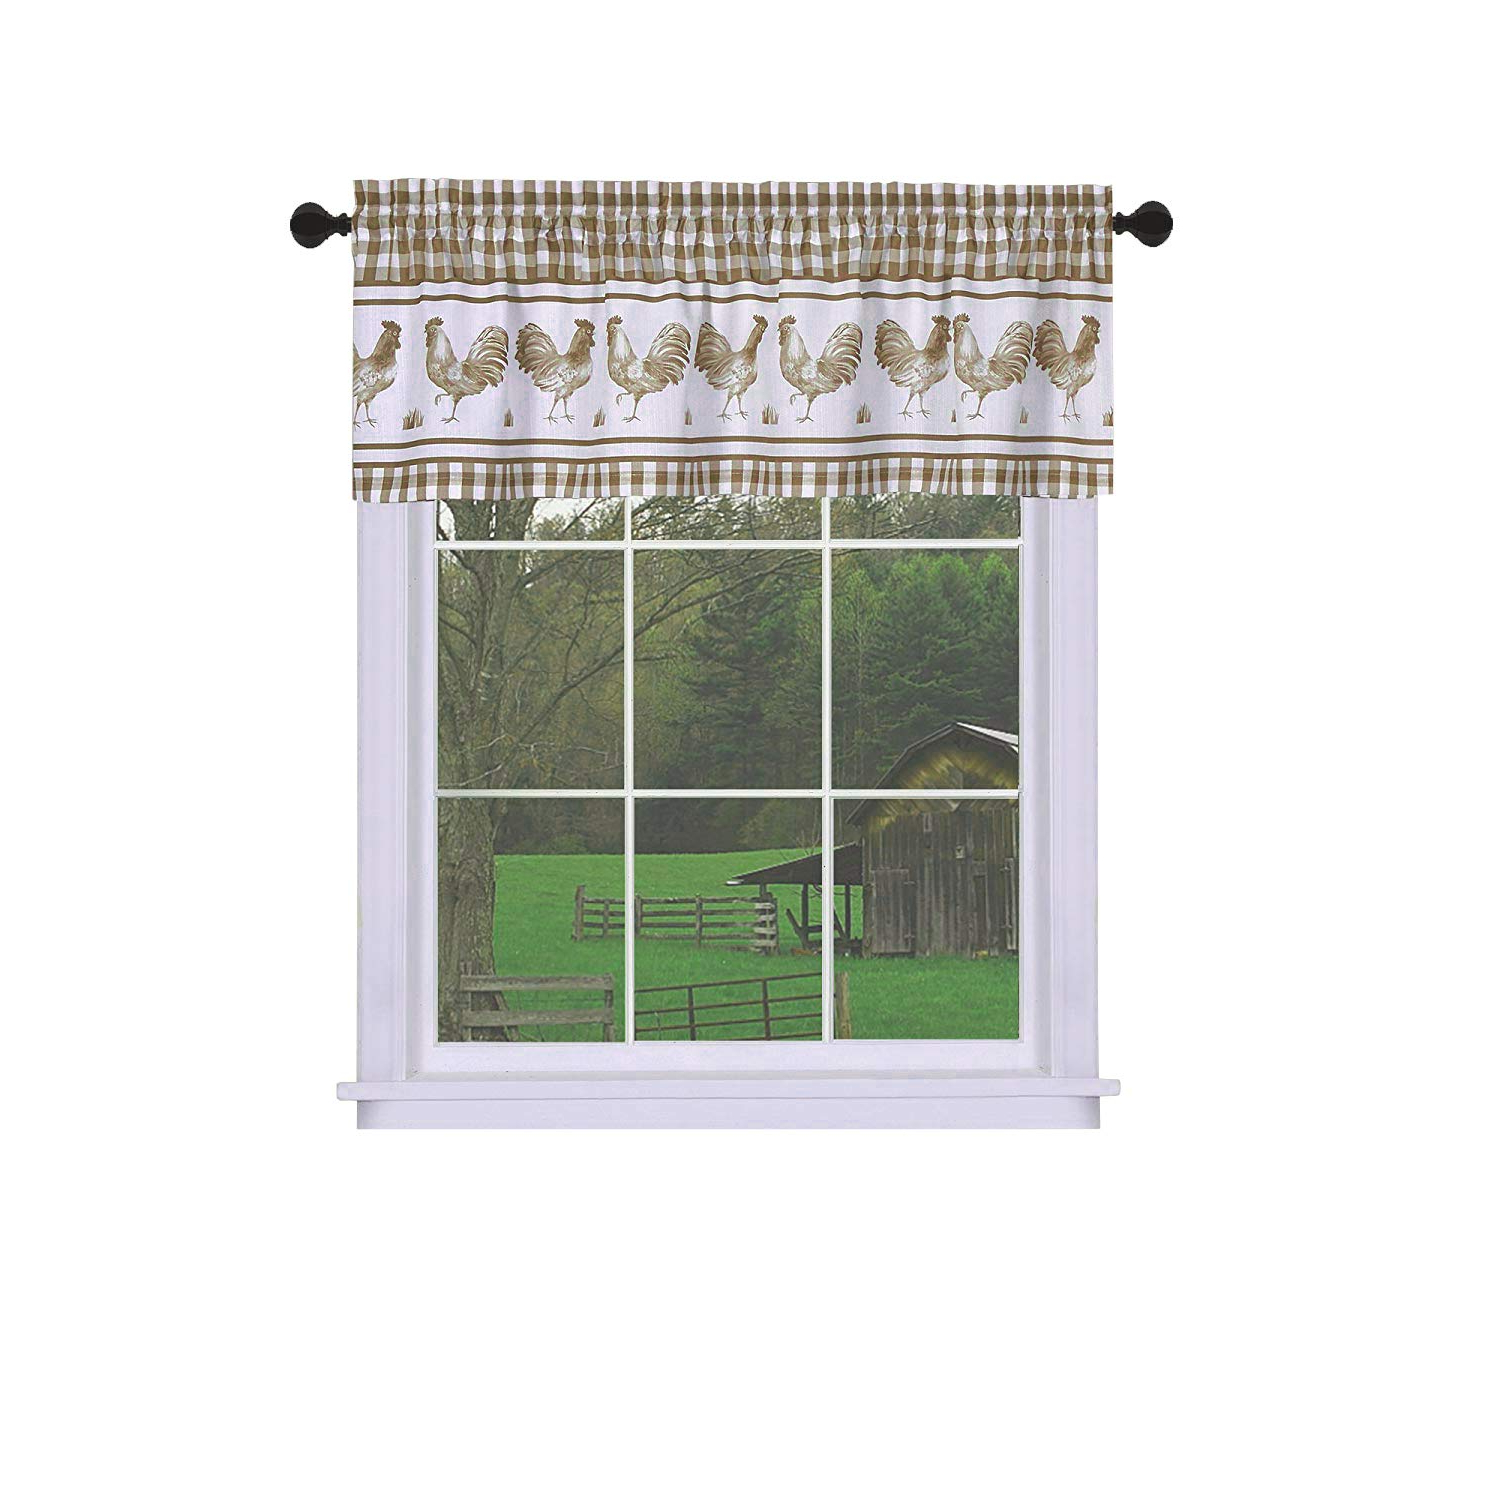 Widely Used Goodgram Plaid Rooster Window Curtain Valance – Assorted Colors (navy) Throughout Barnyard Buffalo Check Rooster Window Valances (View 8 of 20)